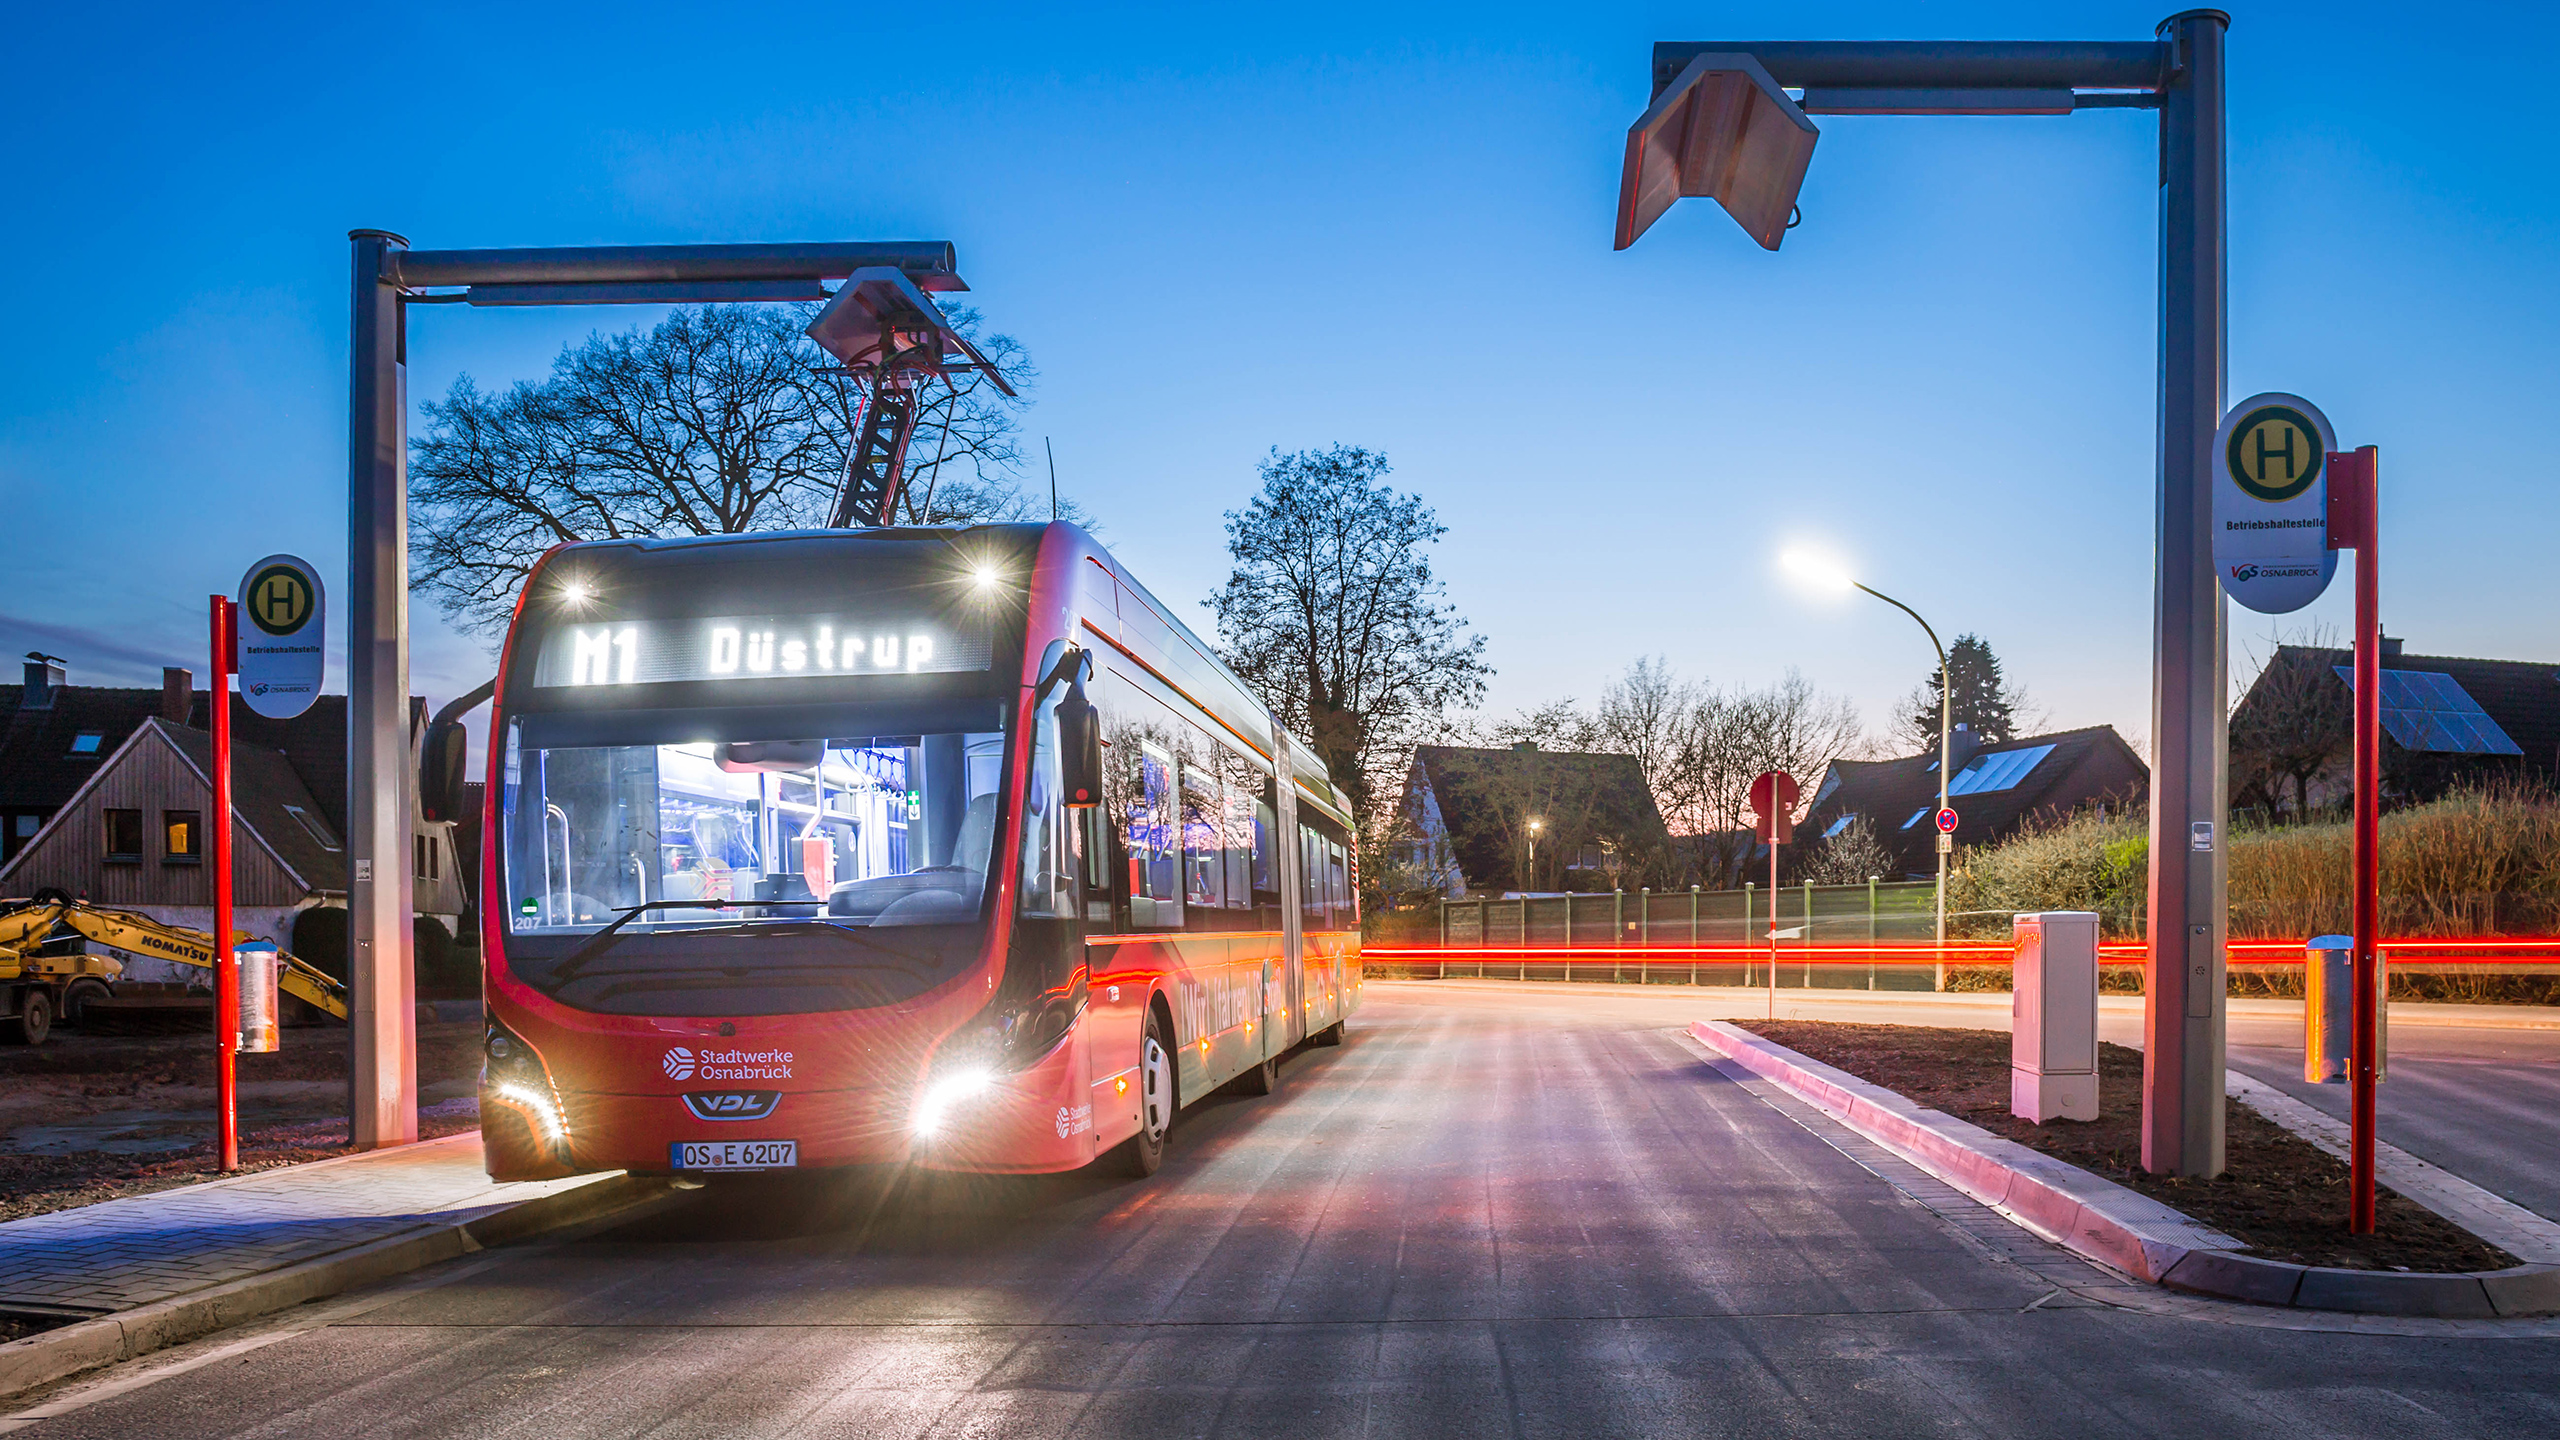 At the final stops, the Osnabrück public utility company's buses are charged in a fast-charging process (Photo: Stadtwerke Osnabrück / Daniel Ohlinger)